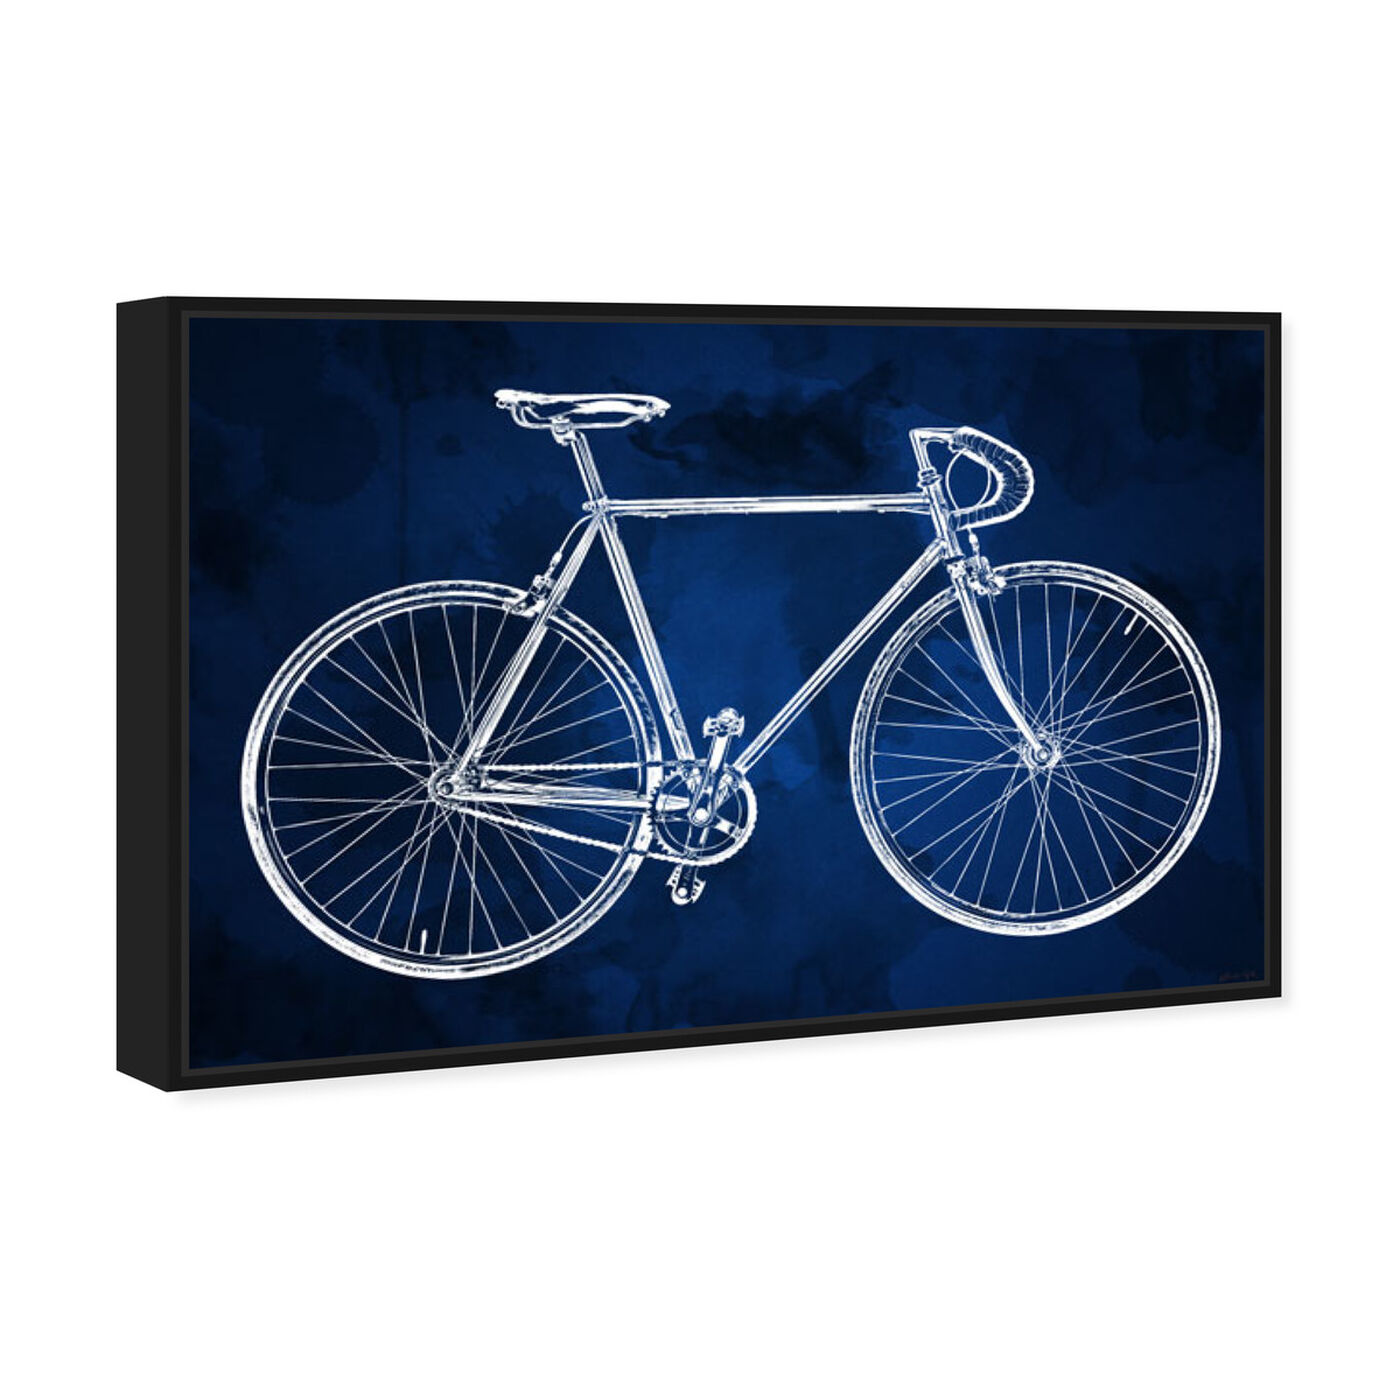 Angled view of Fixie featuring transportation and bicycles art.